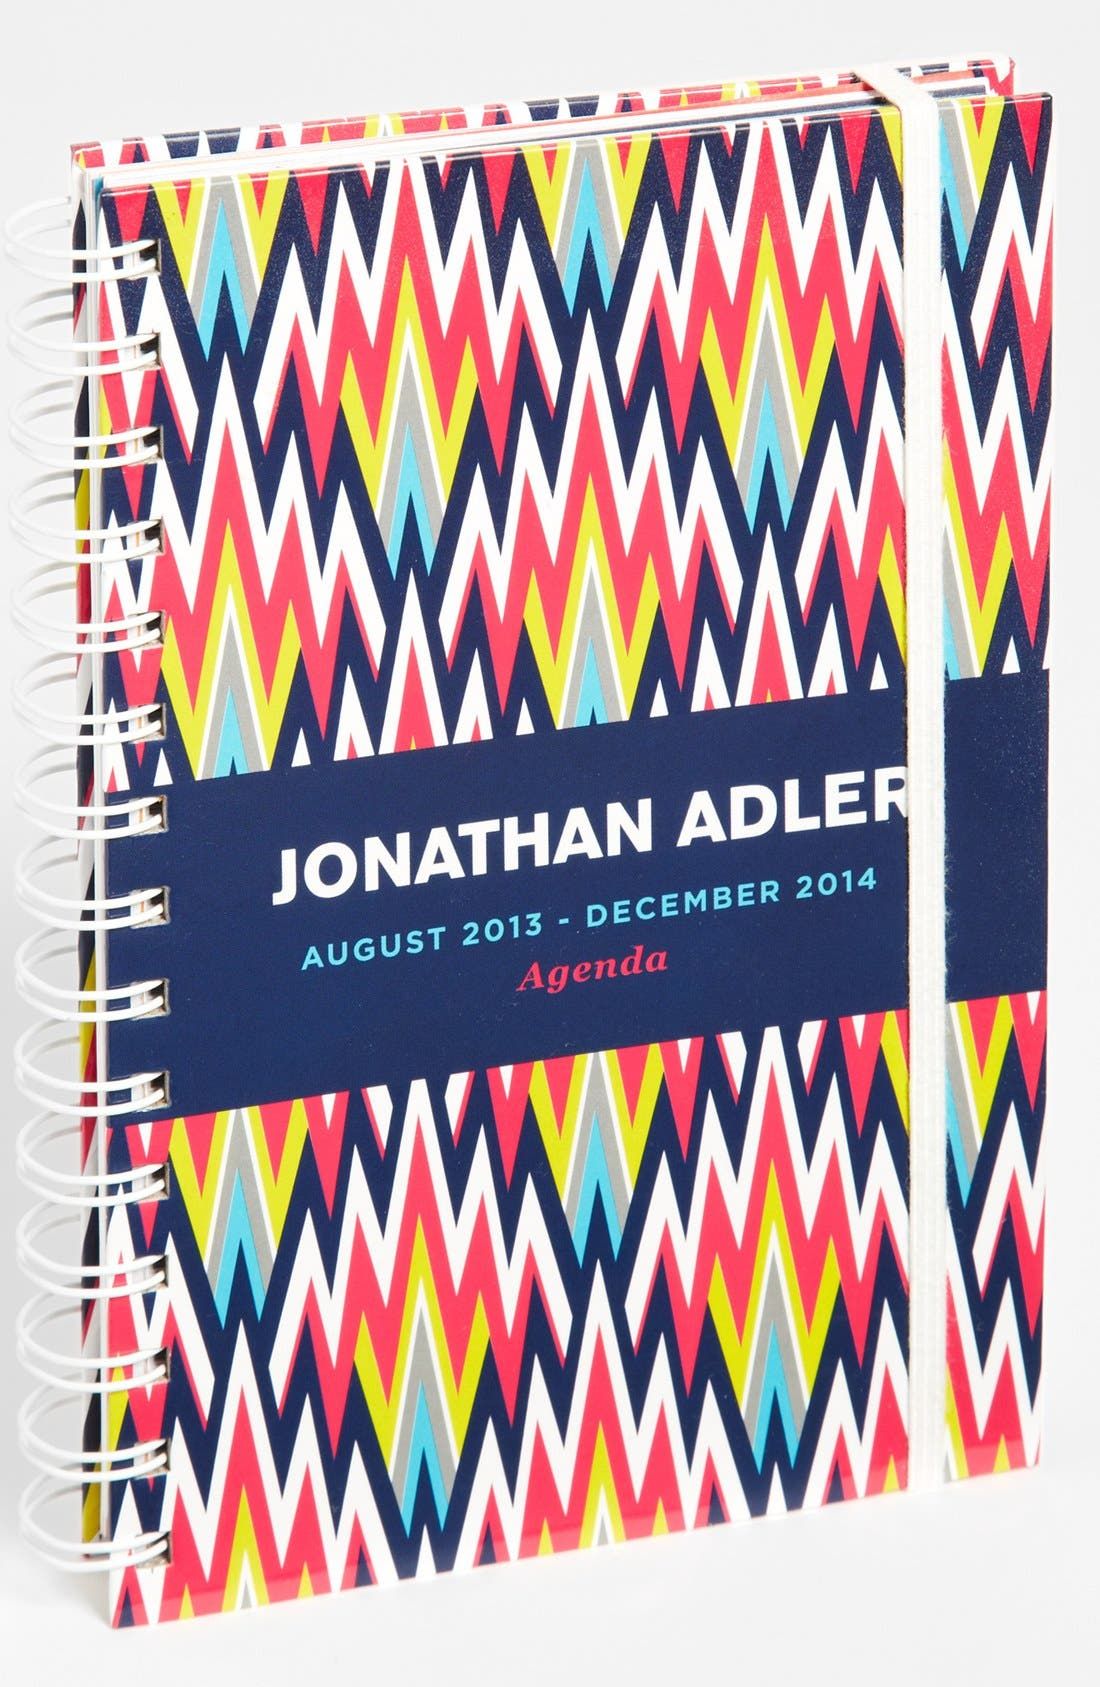 Alternate Image 1 Selected - Jonathan Adler 'Dunbar Road' 17-Month Agenda